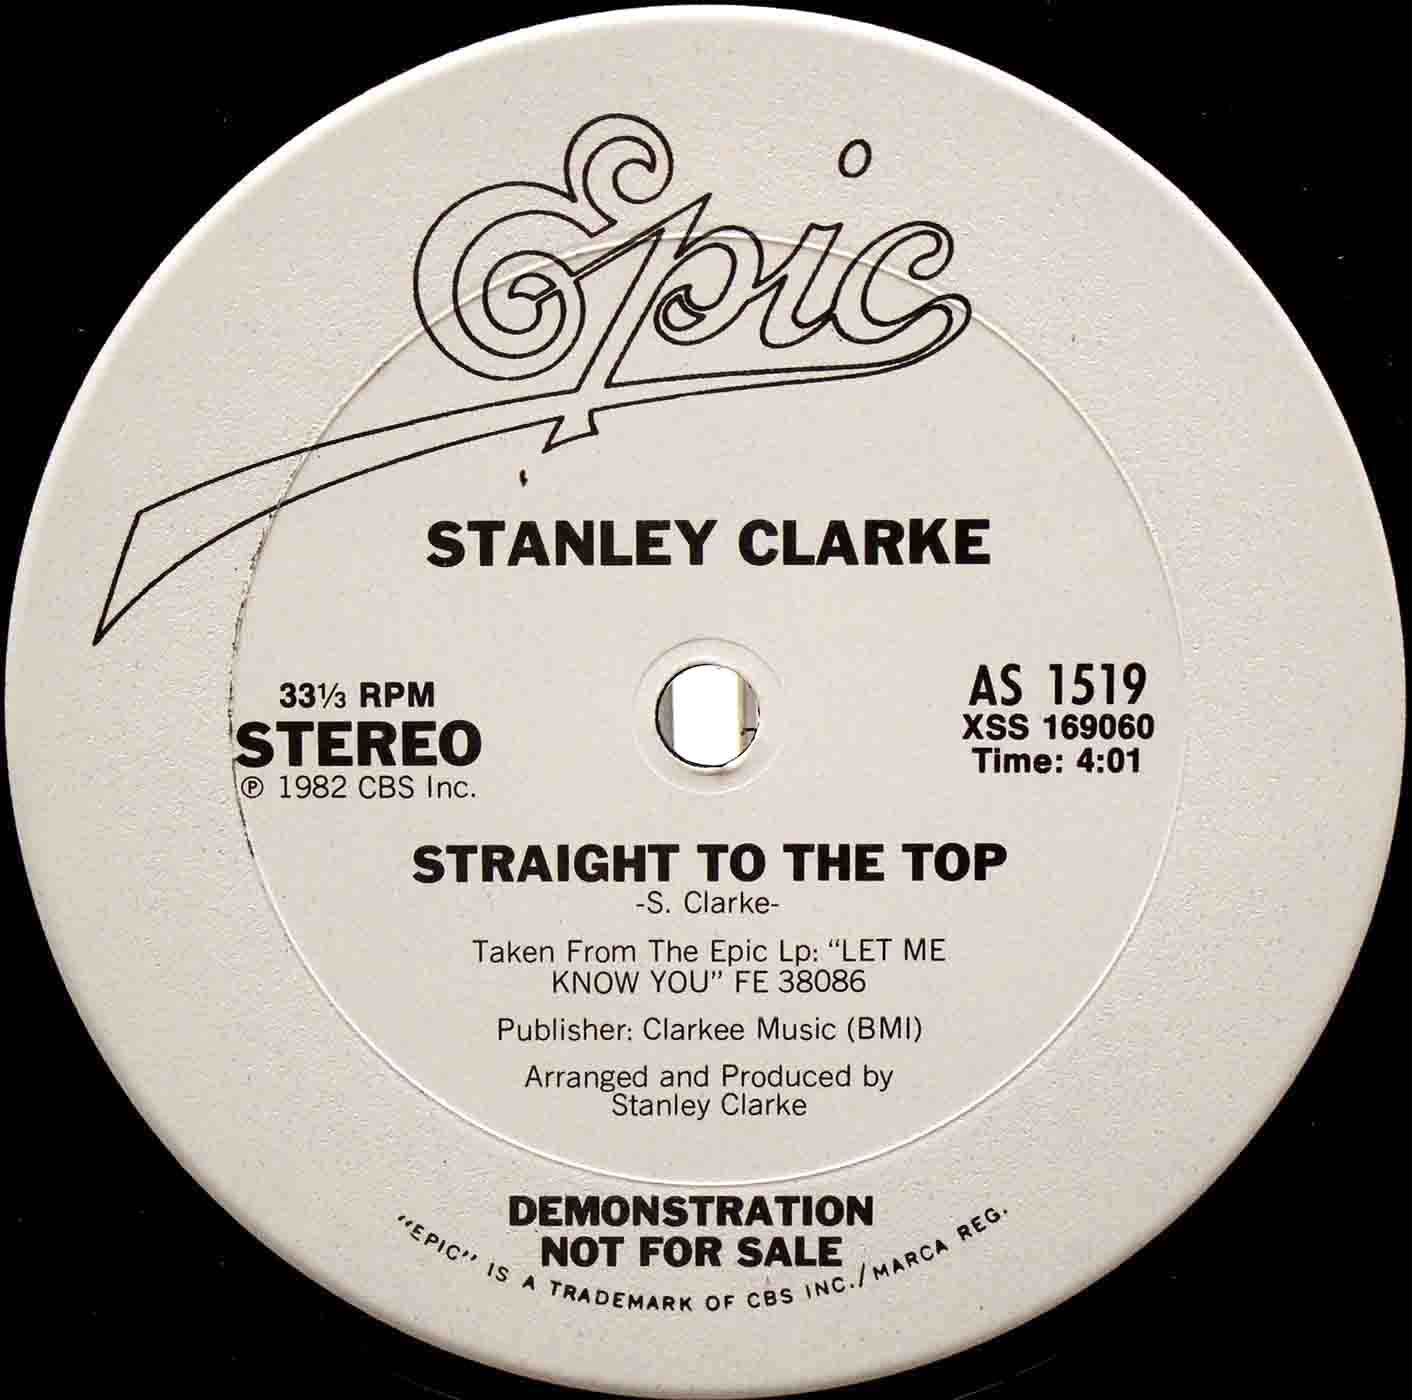 Stanley Clarke - Straight To The Top 02